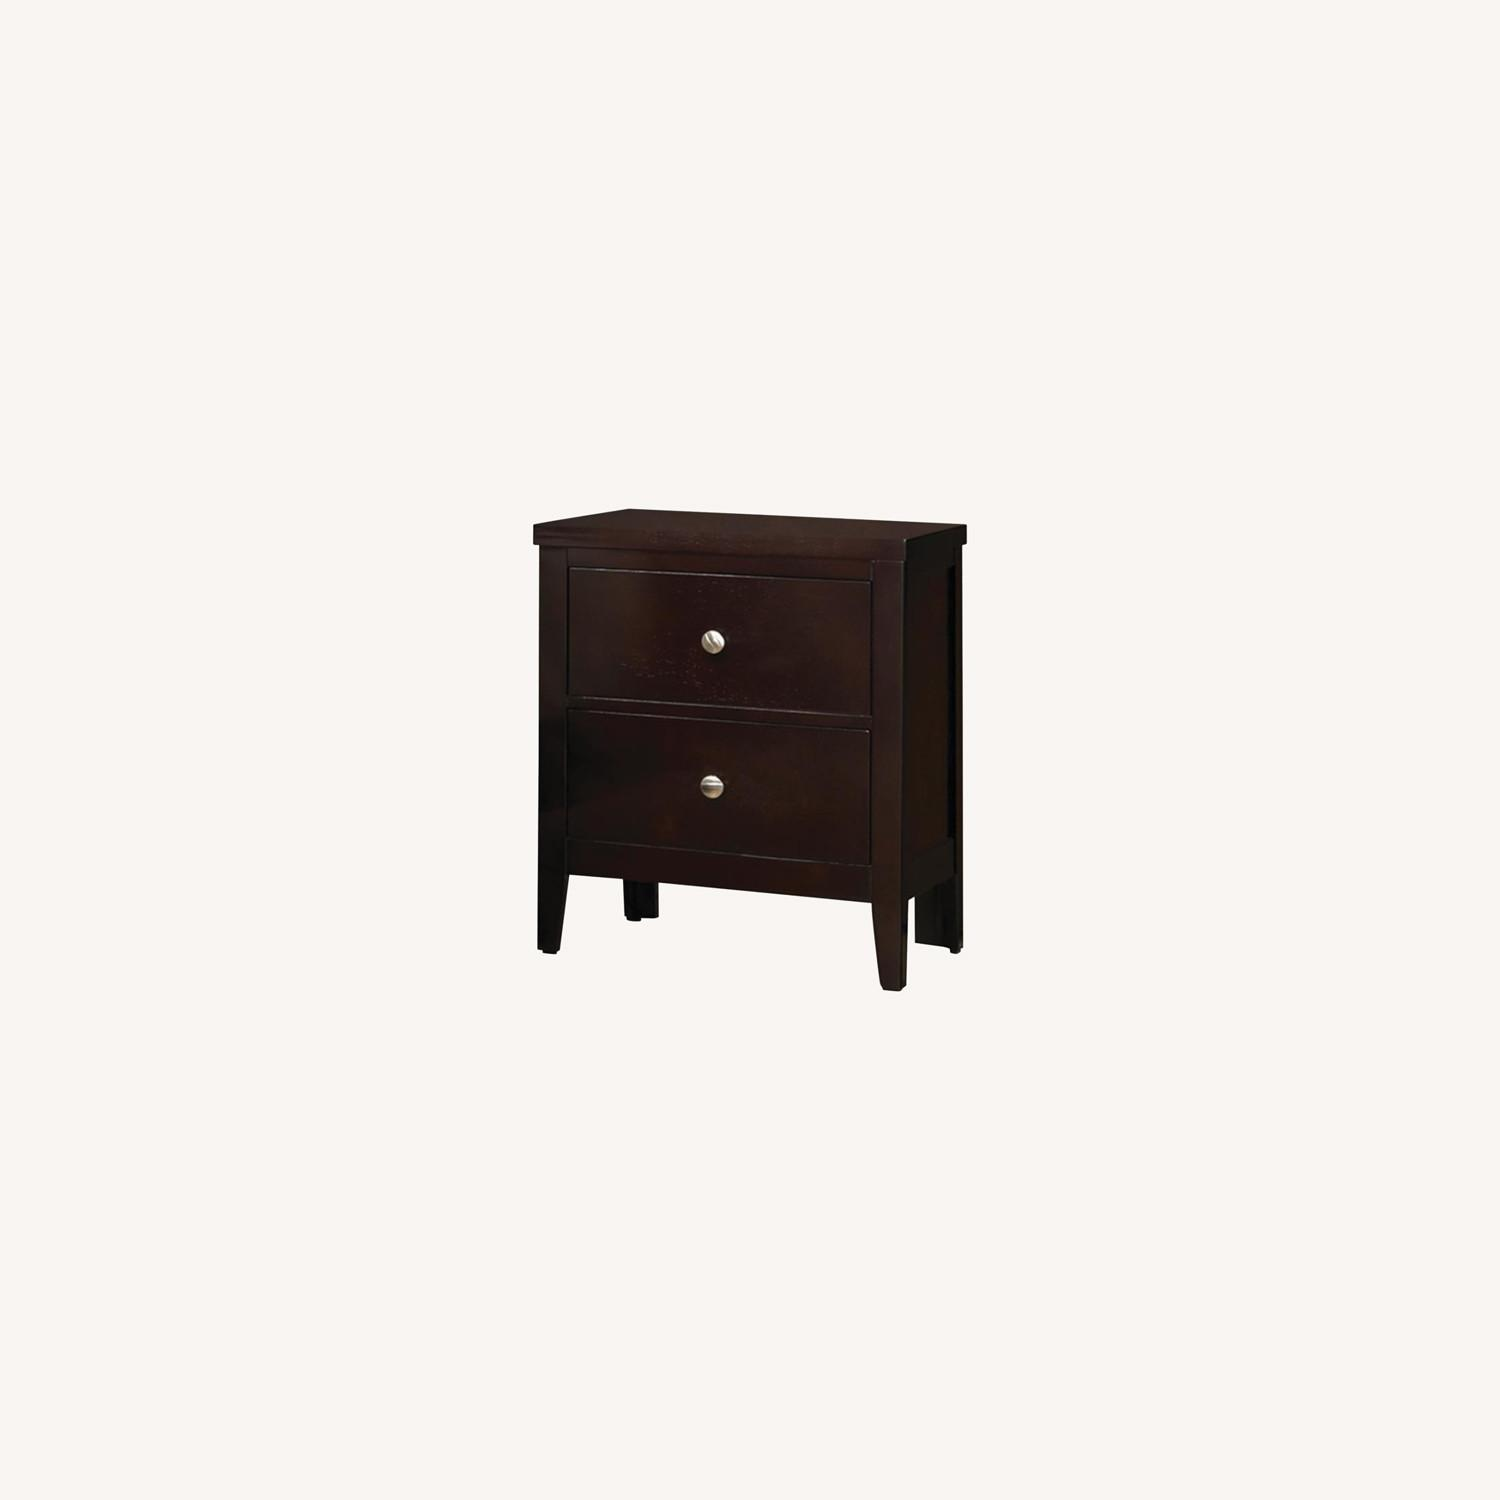 Nightstand In Cappuccino Finish w/ Silver Knobs - image-3